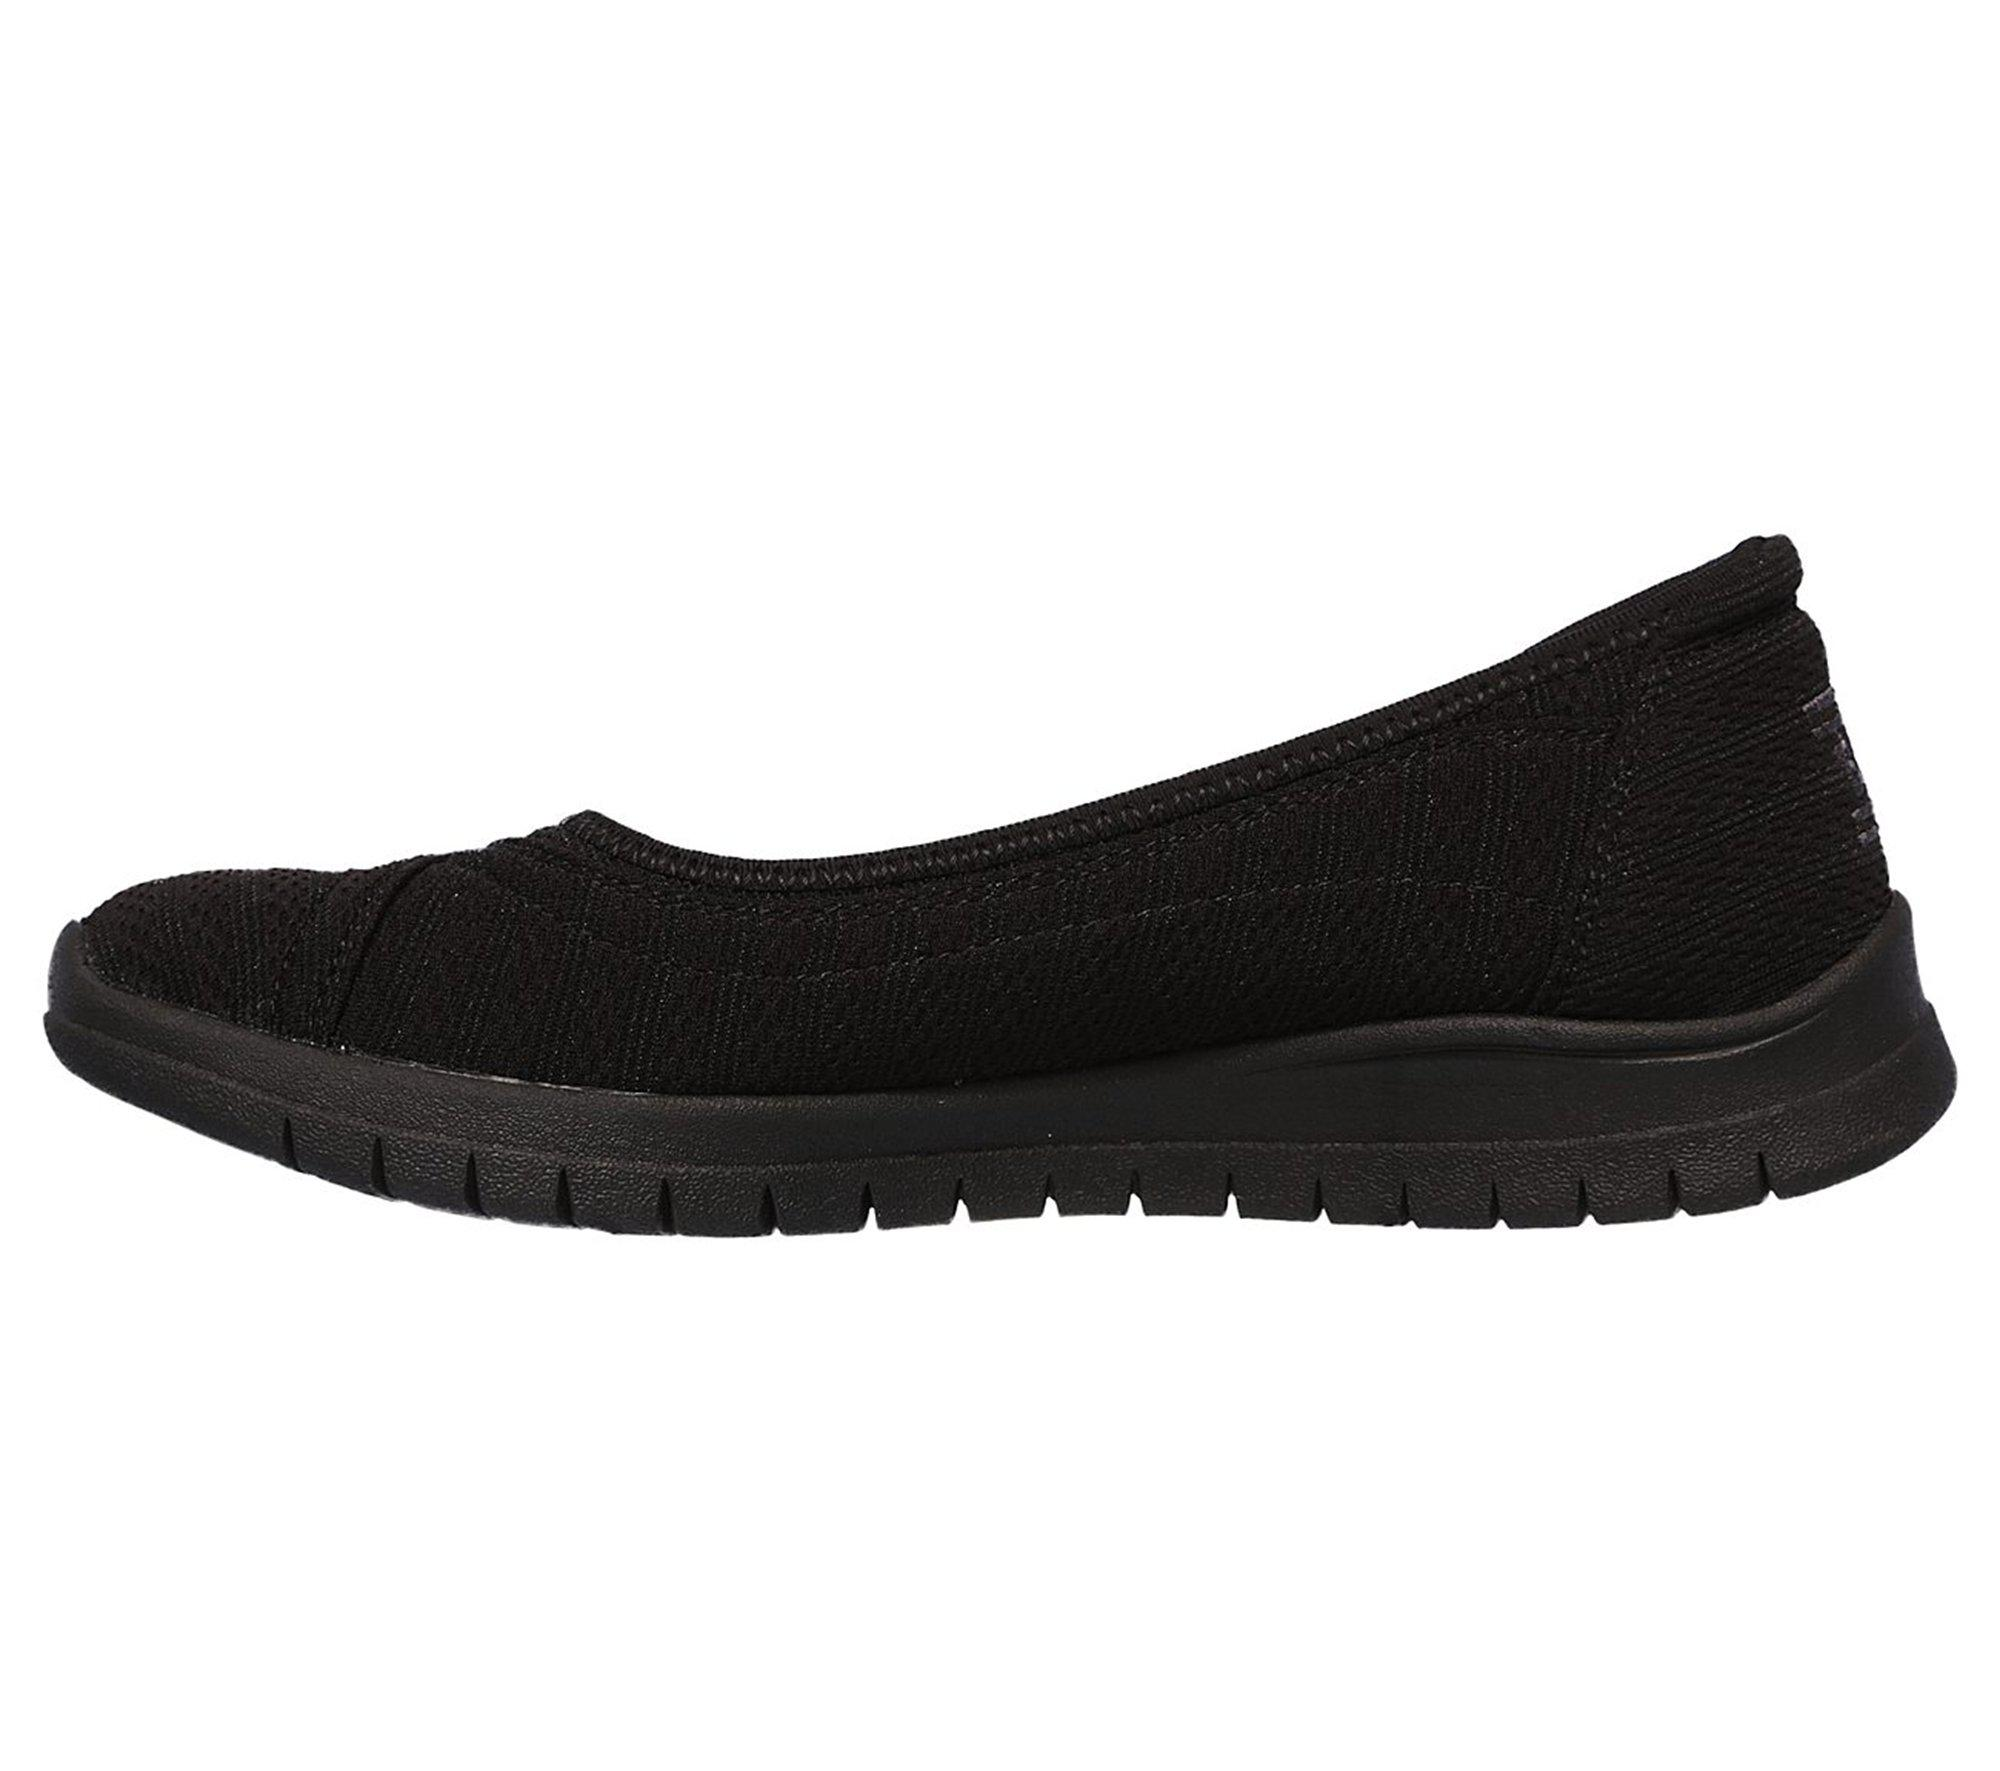 d3c3926f69eb Skechers - Black Bobs Pureflex 3 - Catch Em - Lyst. View fullscreen